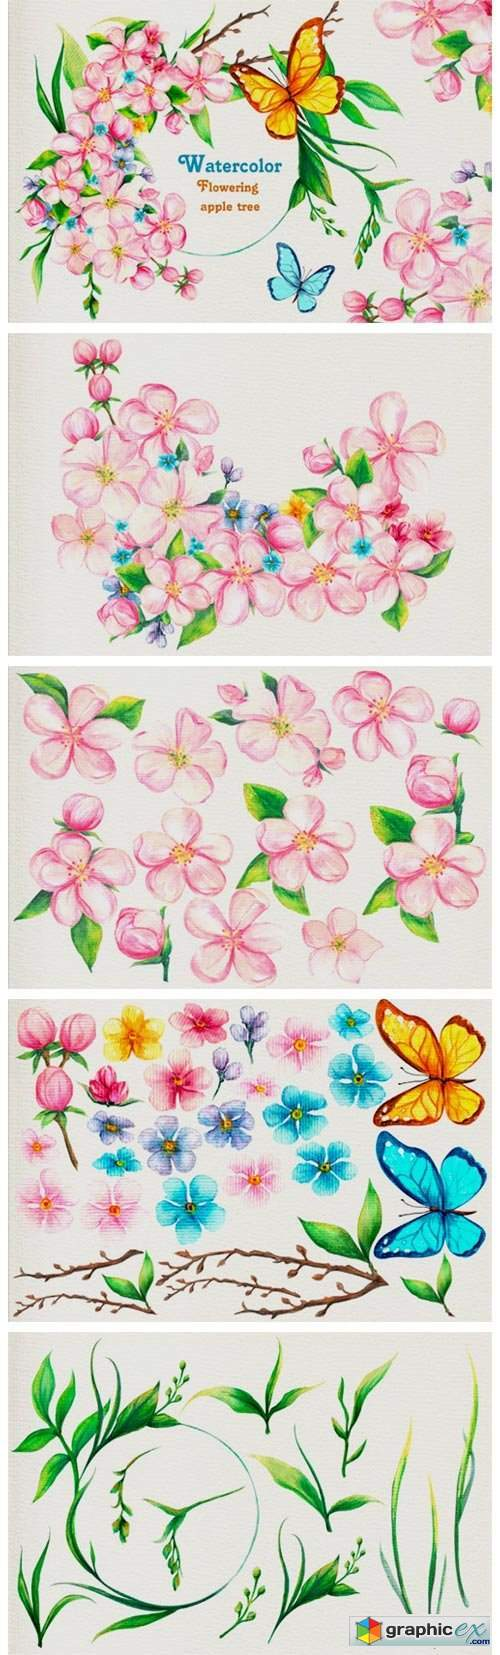 Watercolor Flowering Apple Tree Big Set